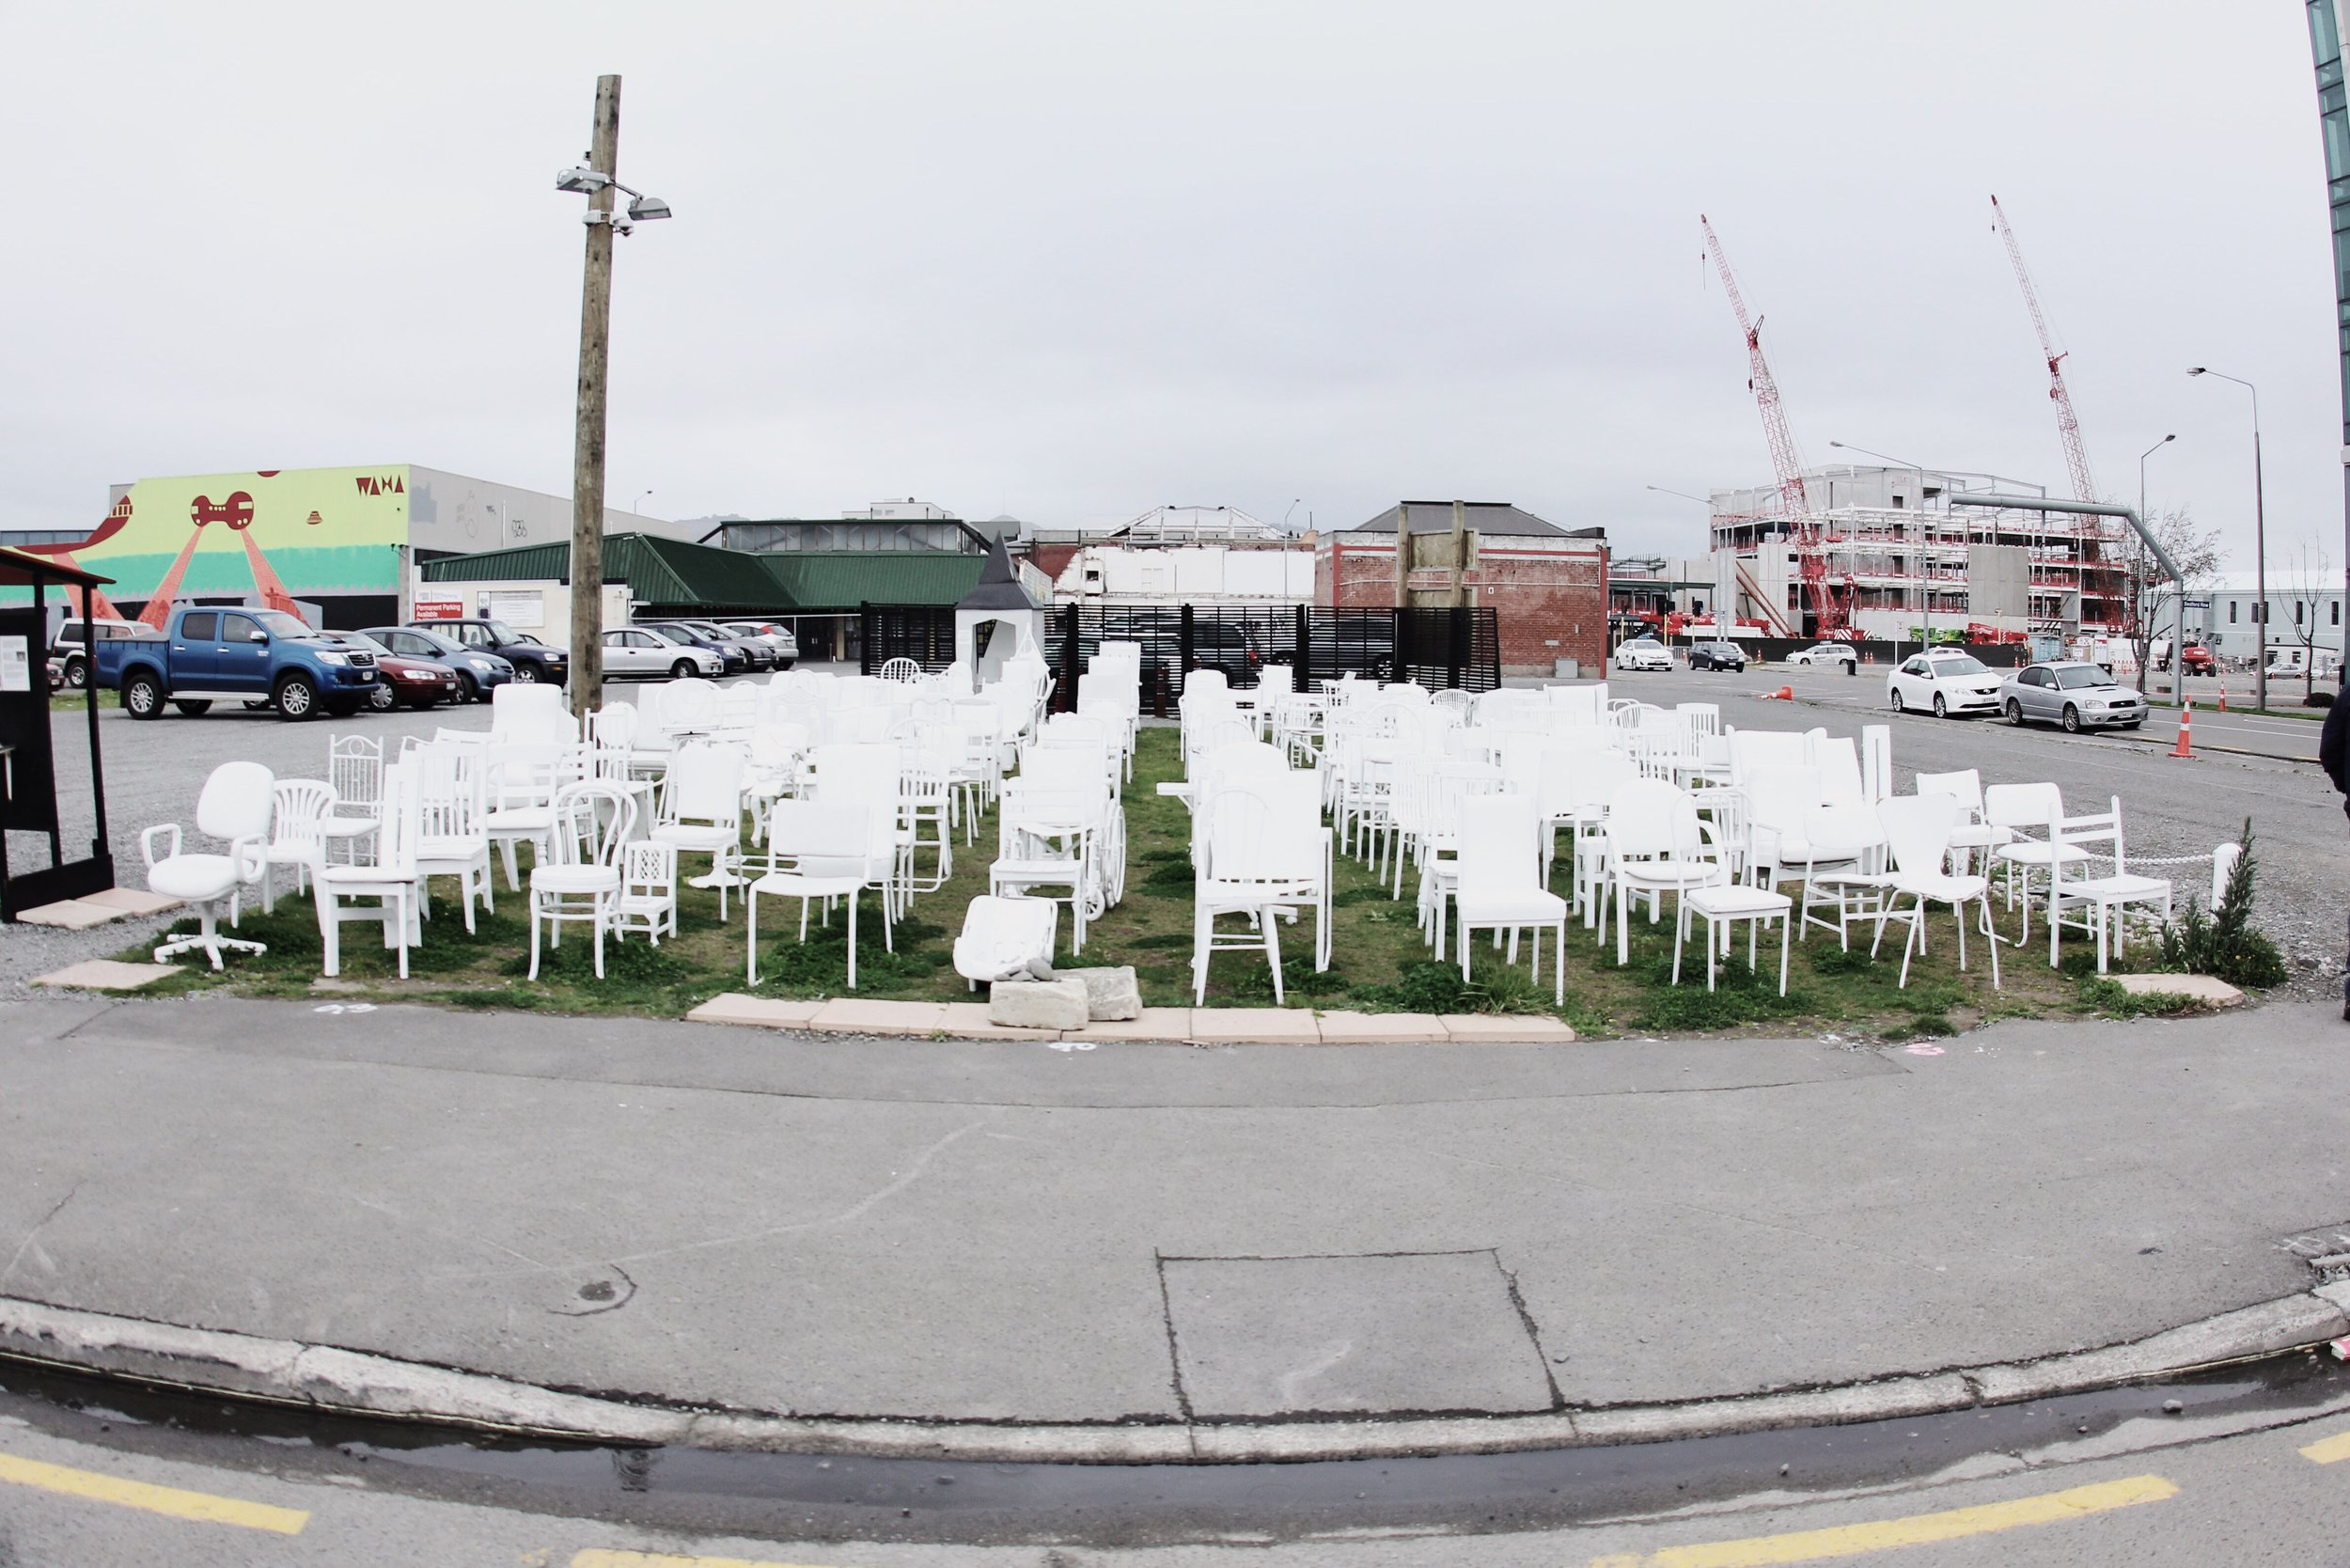 An art instalment, paying tribute to the lives lost in Christchurch' most recent earthquake. ❤️